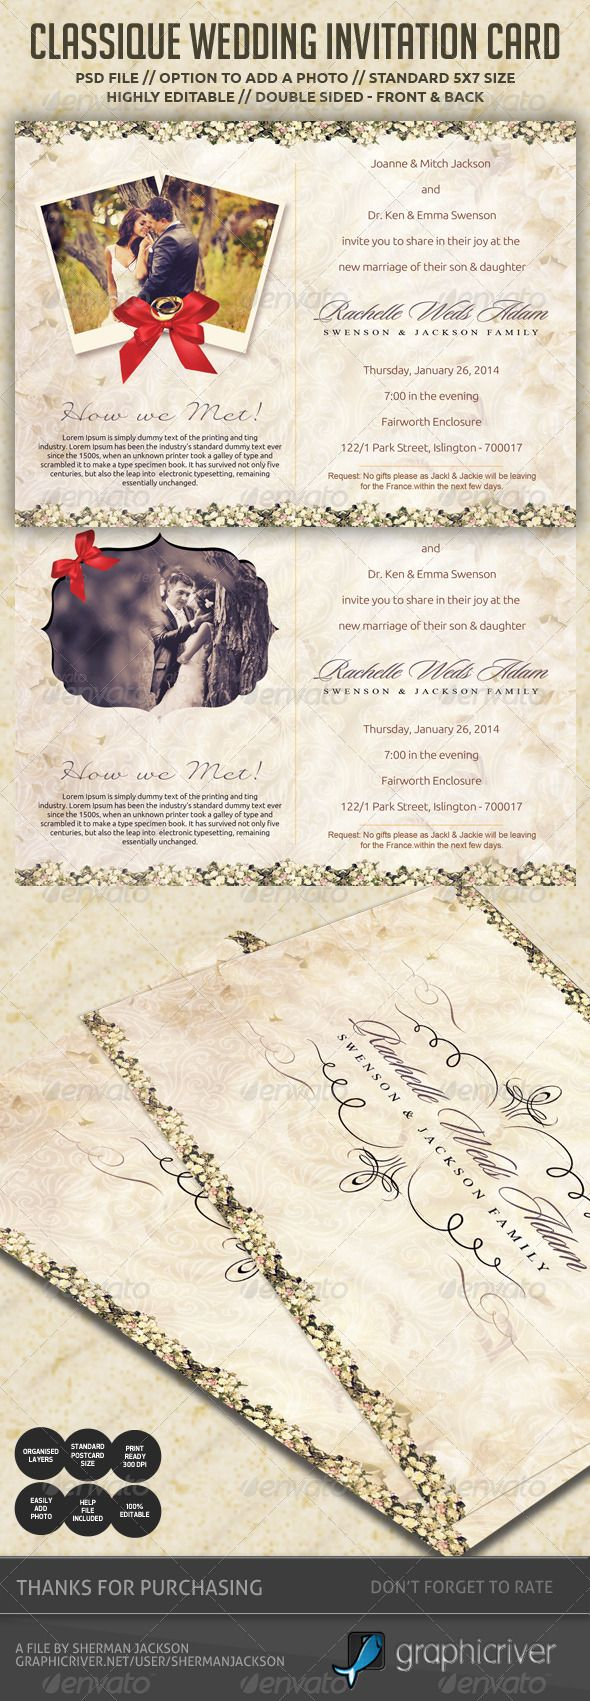 Classique Wedding Invitation Postcard 81 best